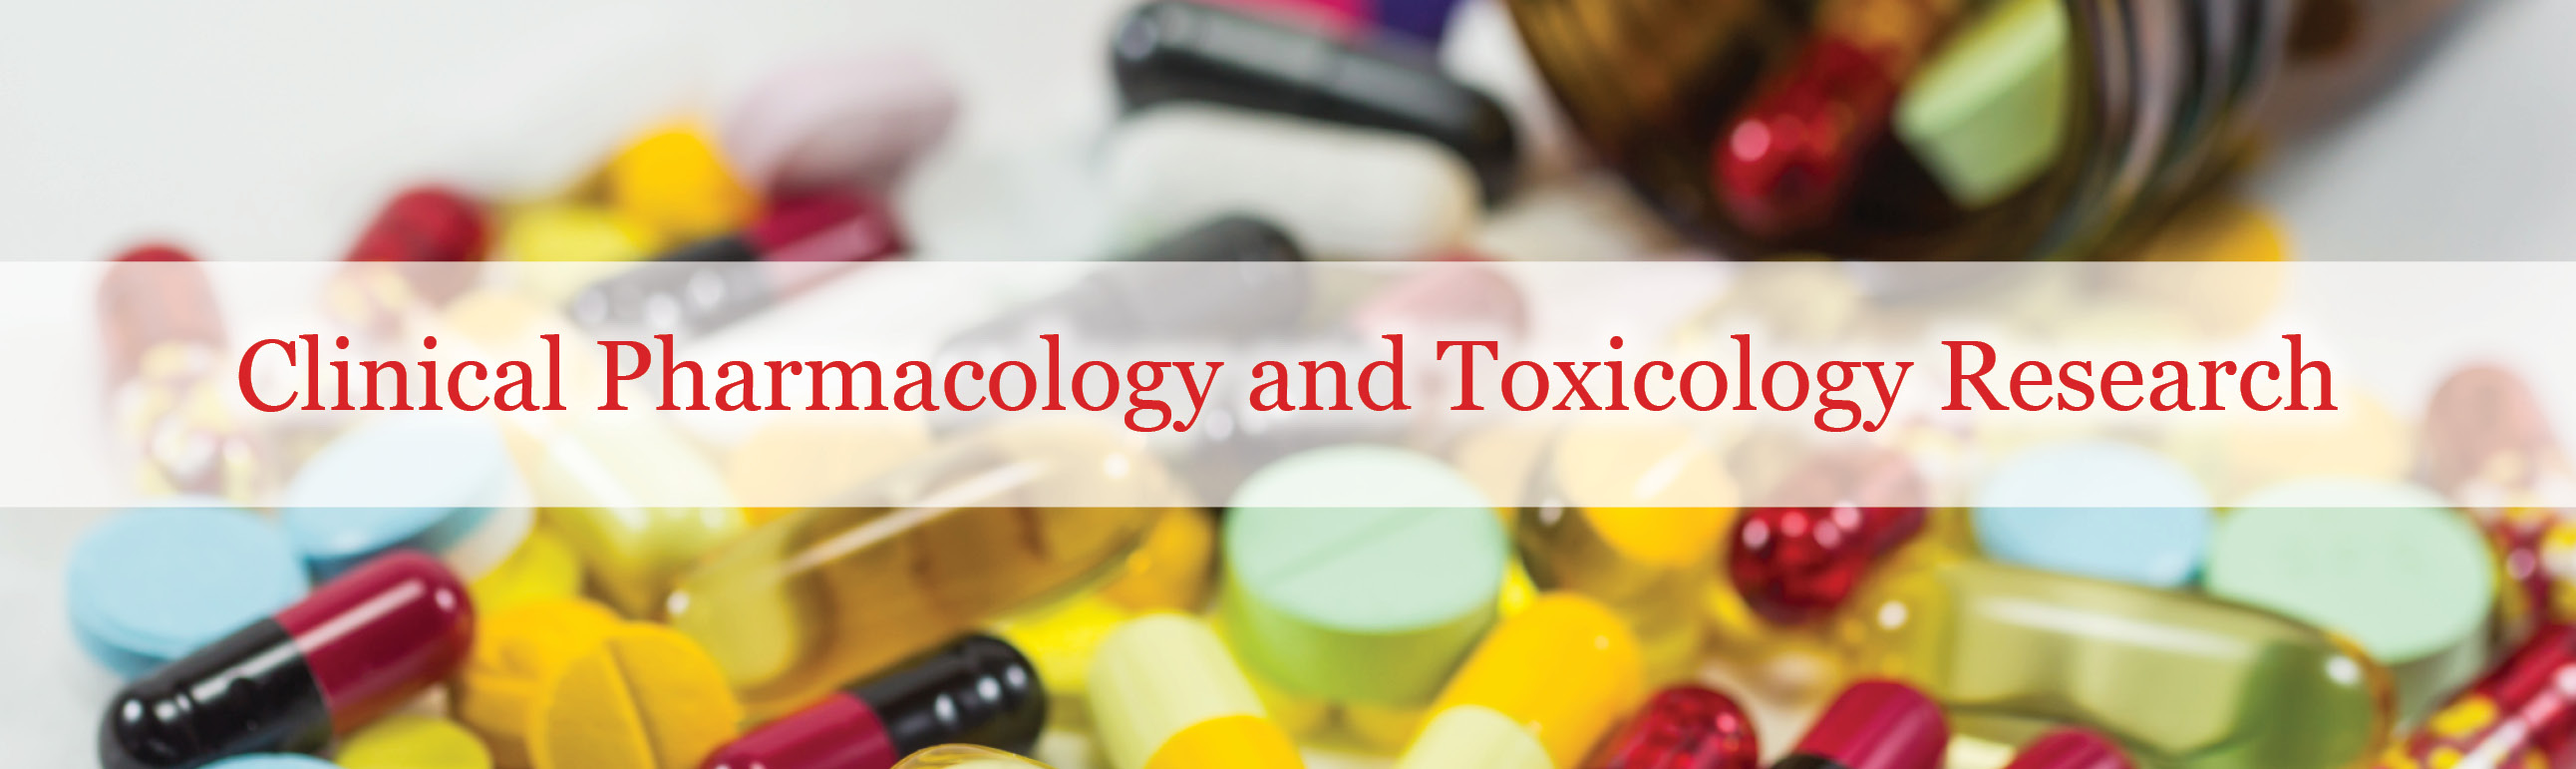 Clinical Pharmacology and Toxicology Research